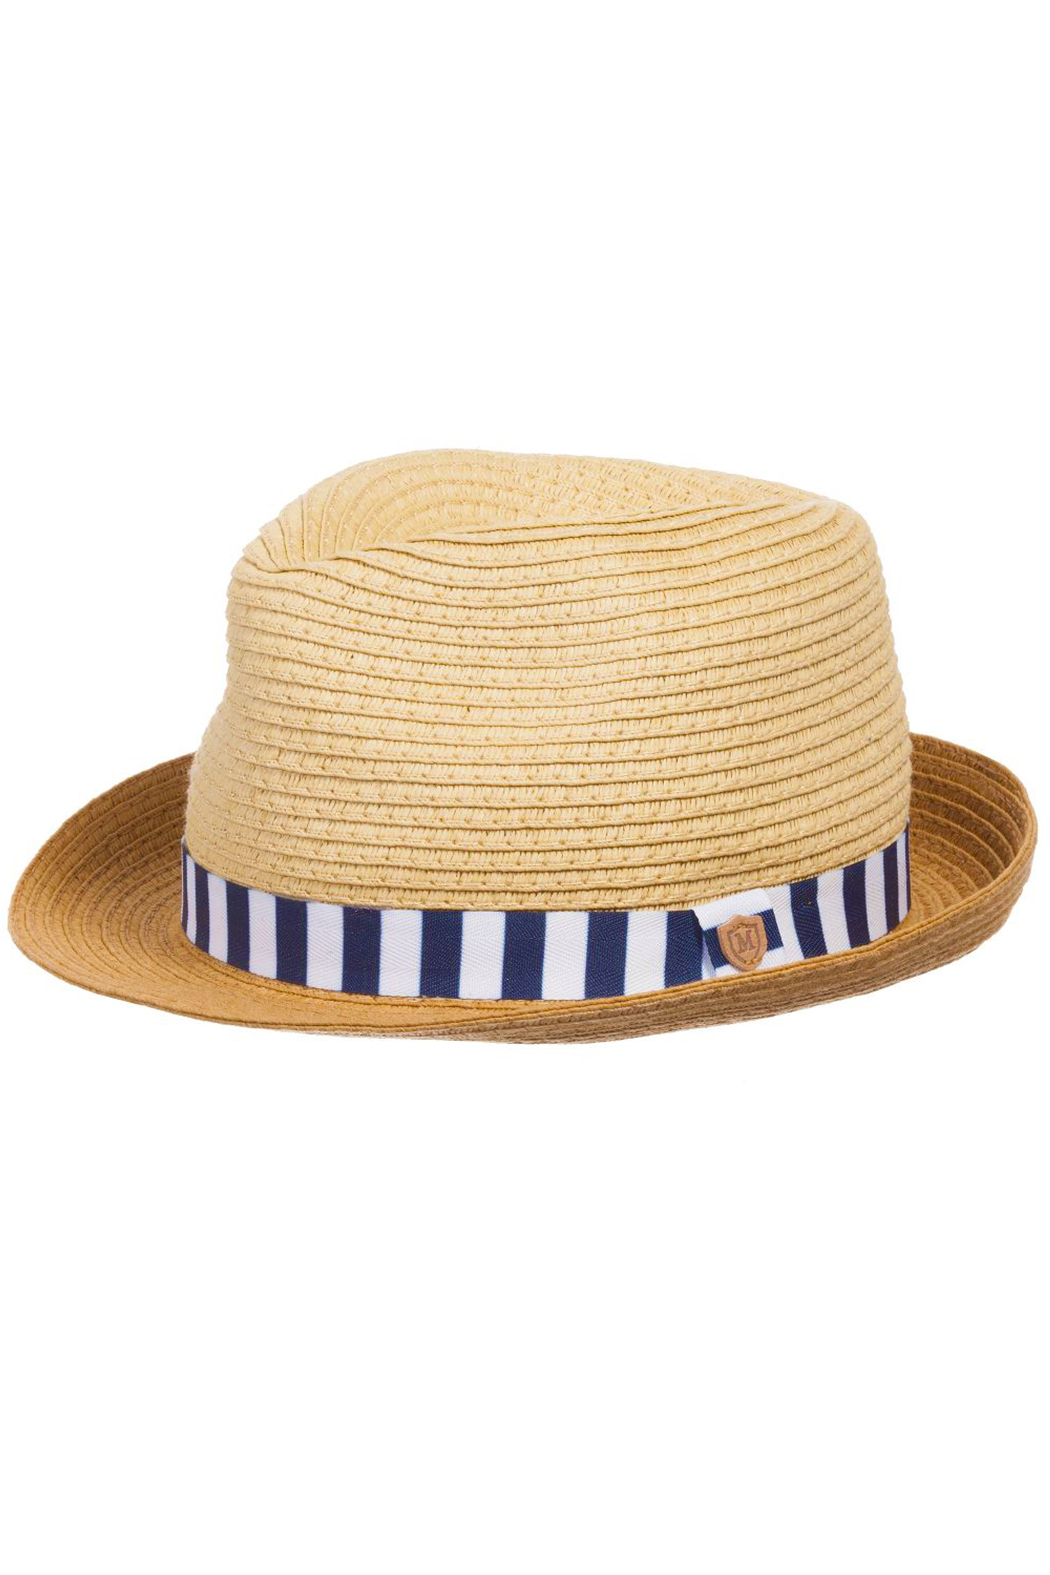 Mayoral Straw Fedora Hat - Main Image